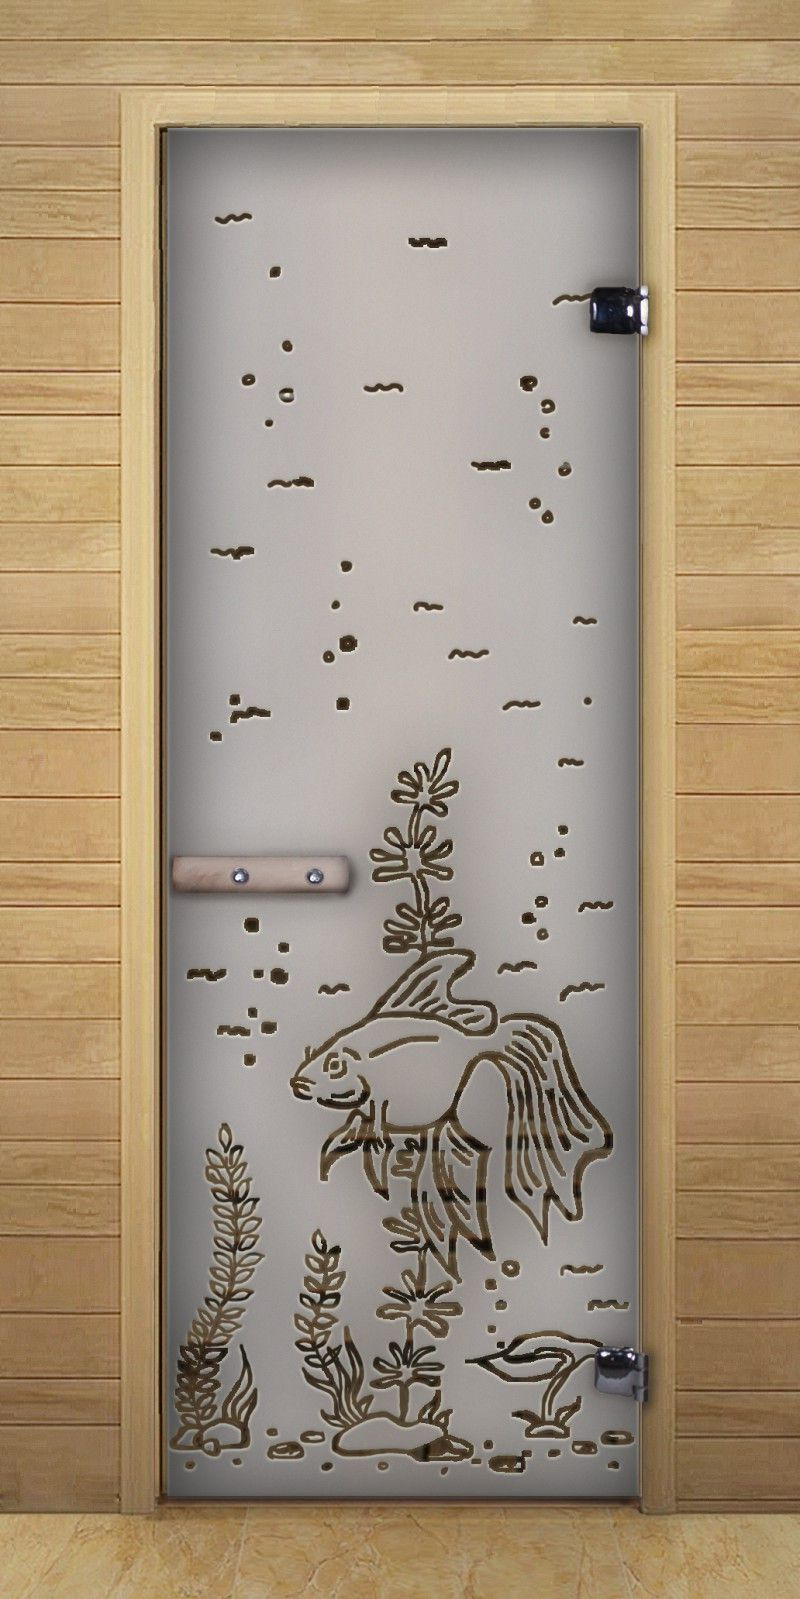 Wooden wall and glass door to the bathroom with a funny image of the seabed